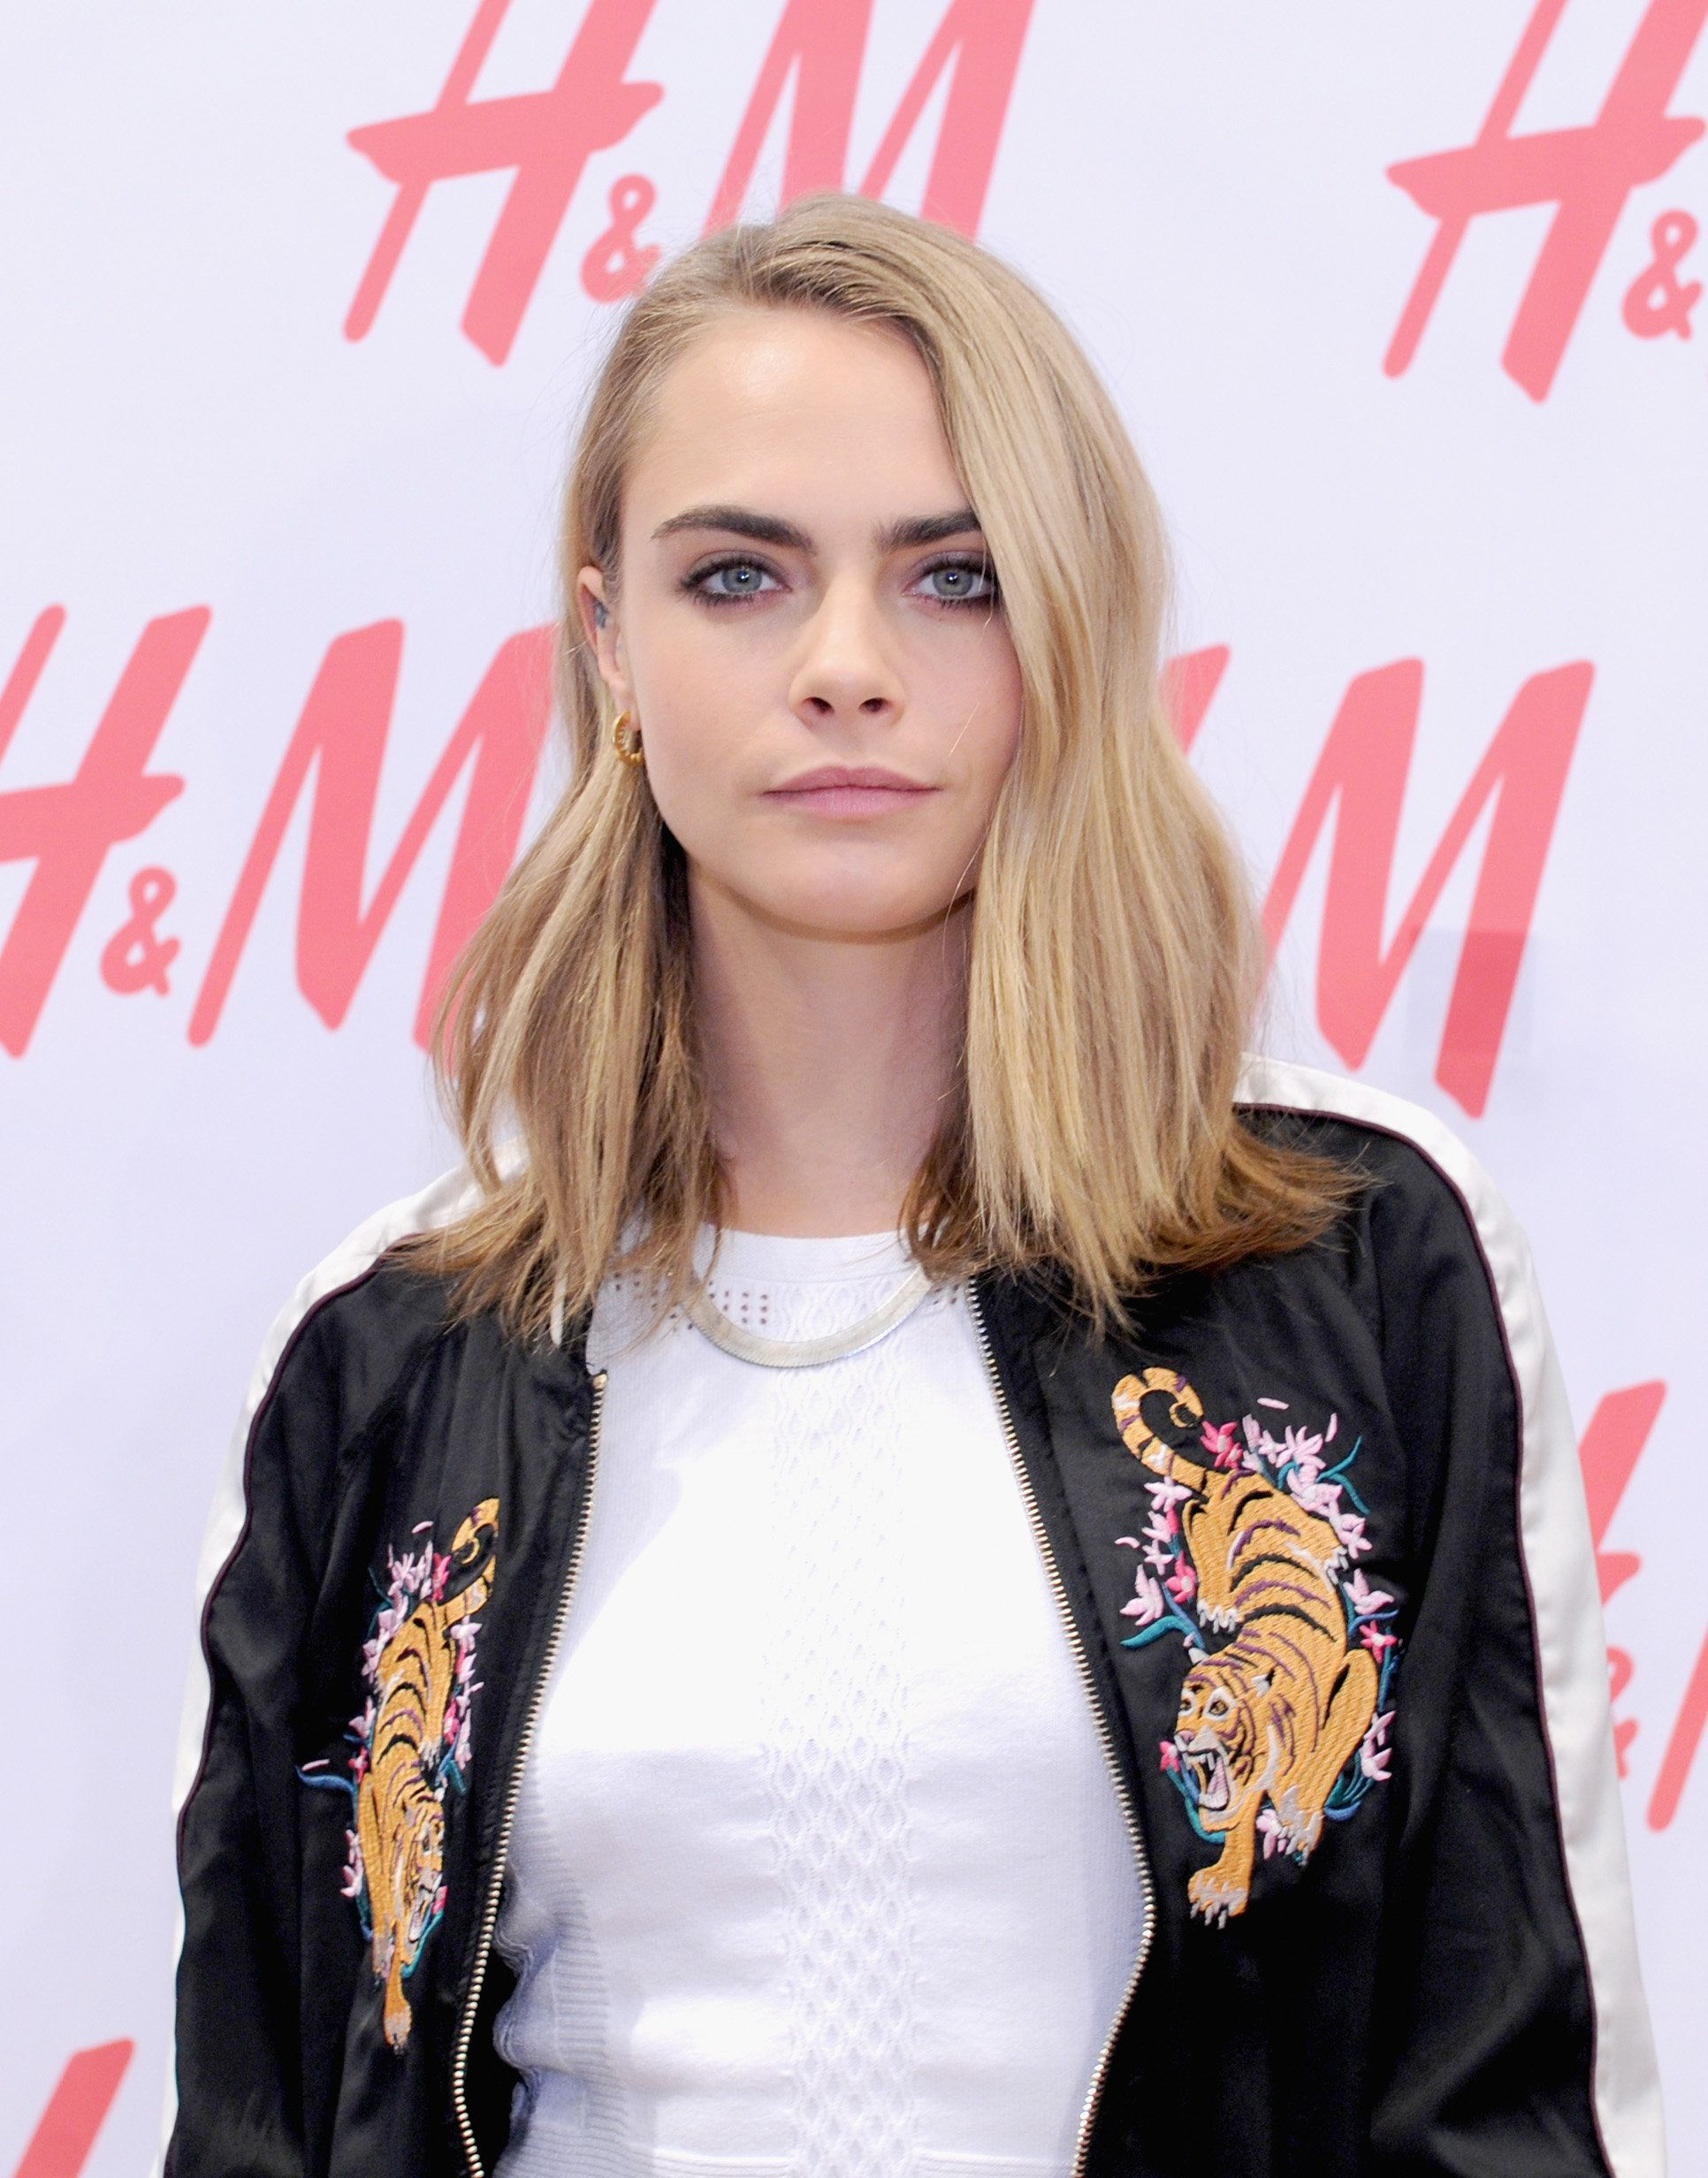 Cara Delevingne: 'If People Want To Say I'm Gay, That's